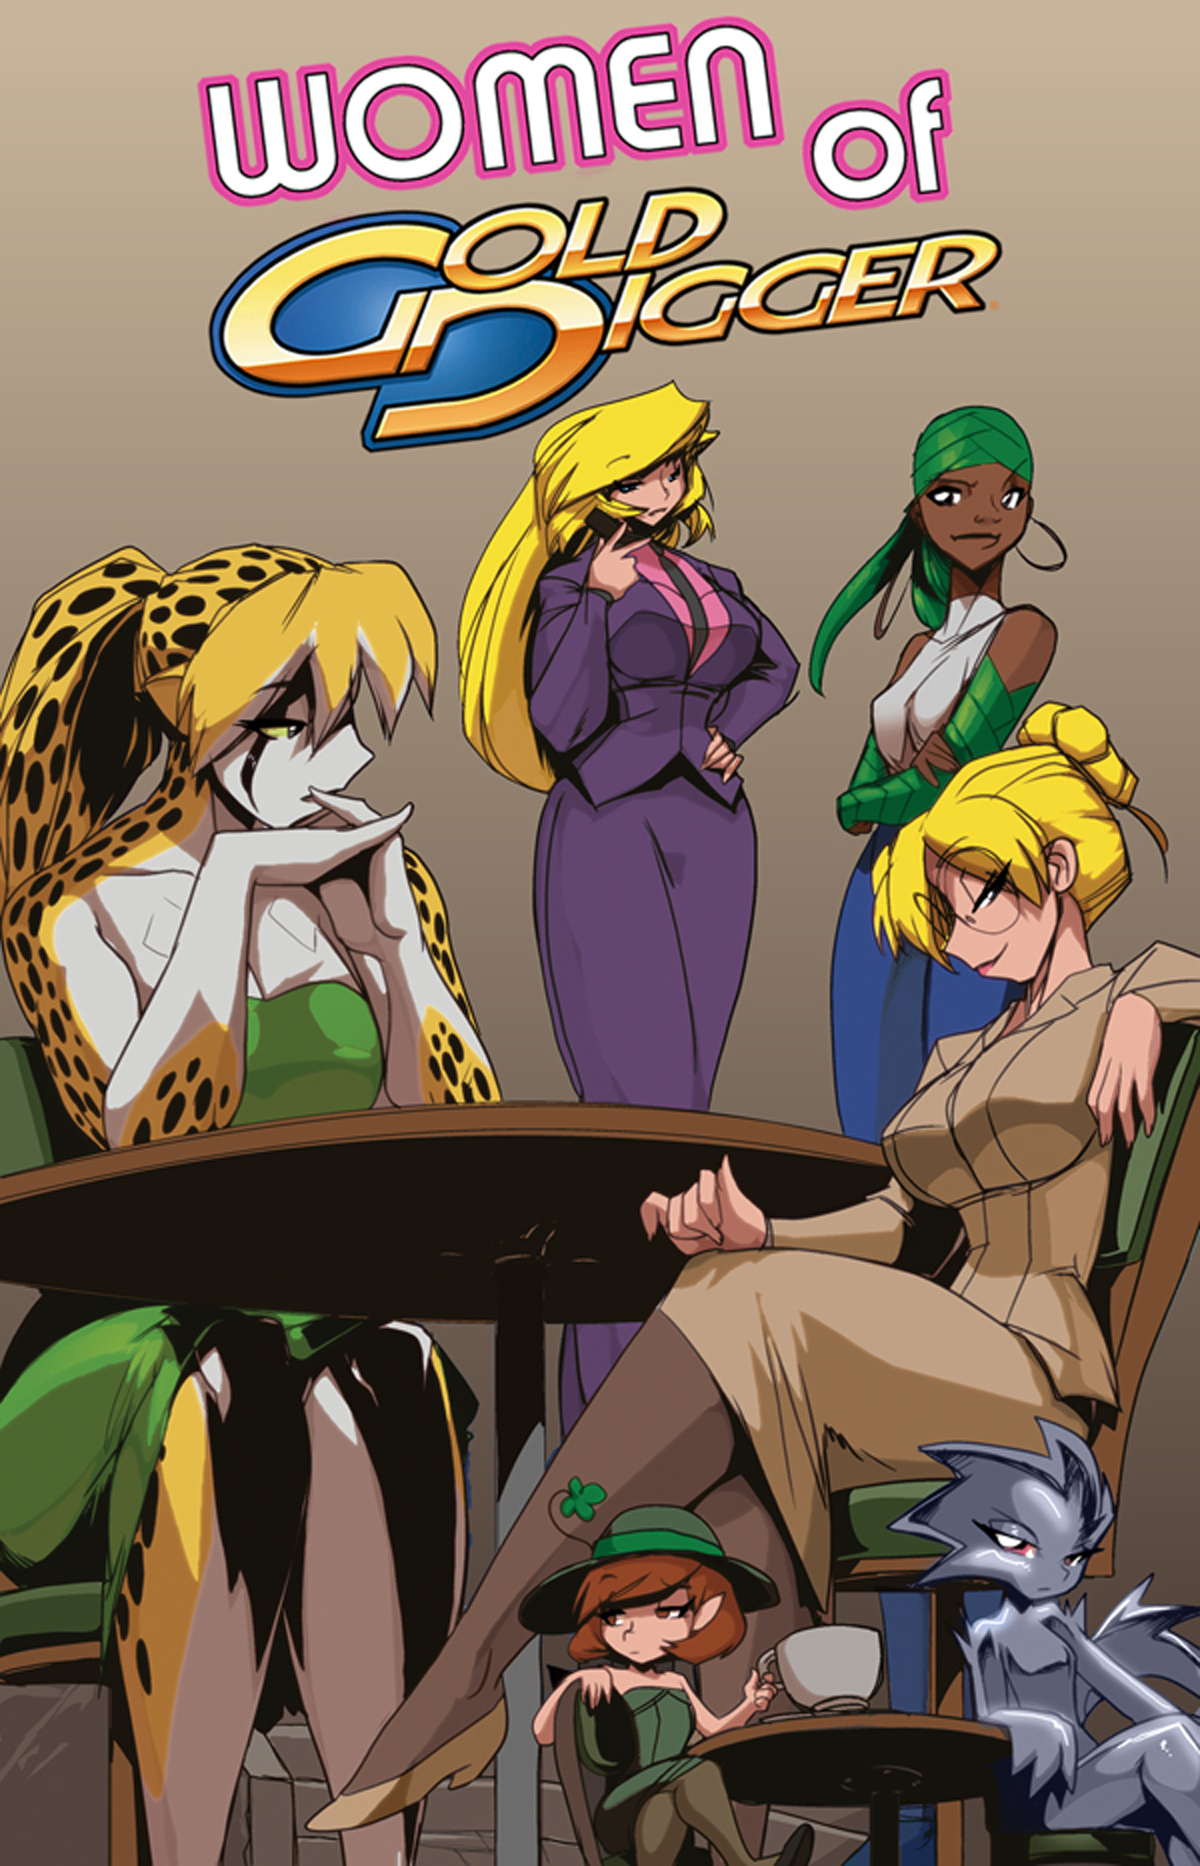 WOMEN OF GOLD DIGGER TP VOL 01